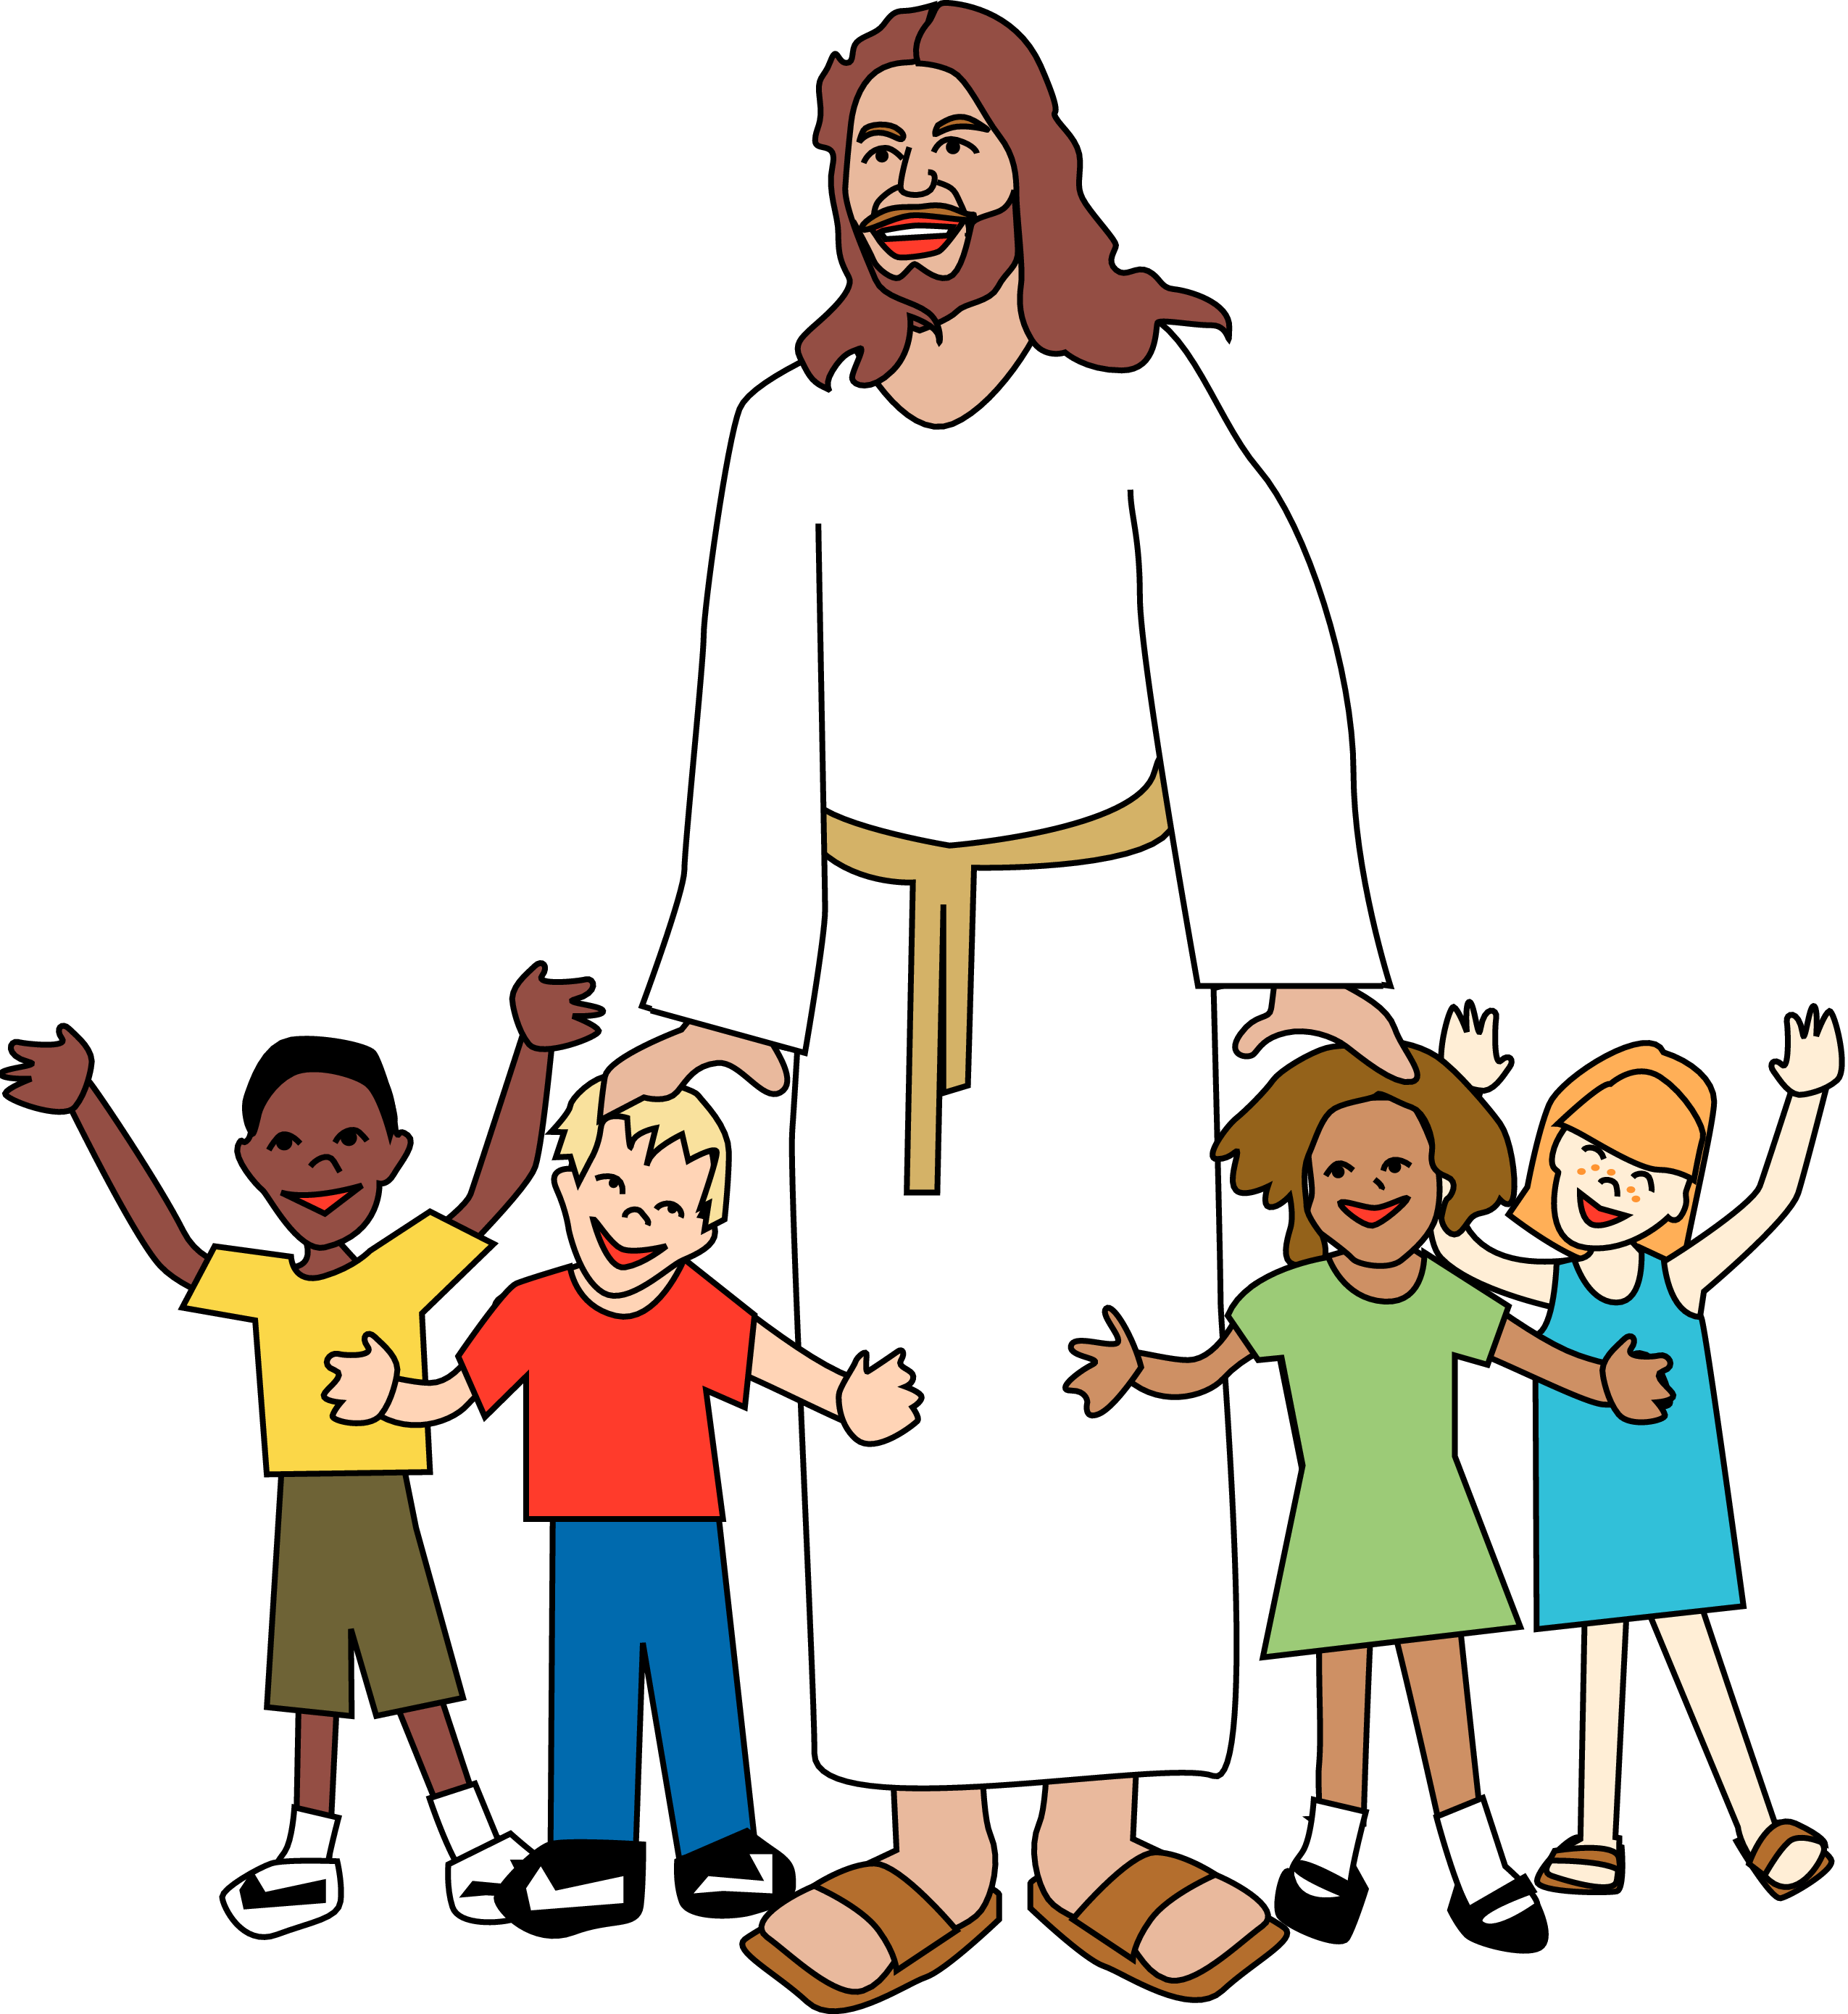 Sunday School Jesus Clip Art Merry Christmas Amp Happy.